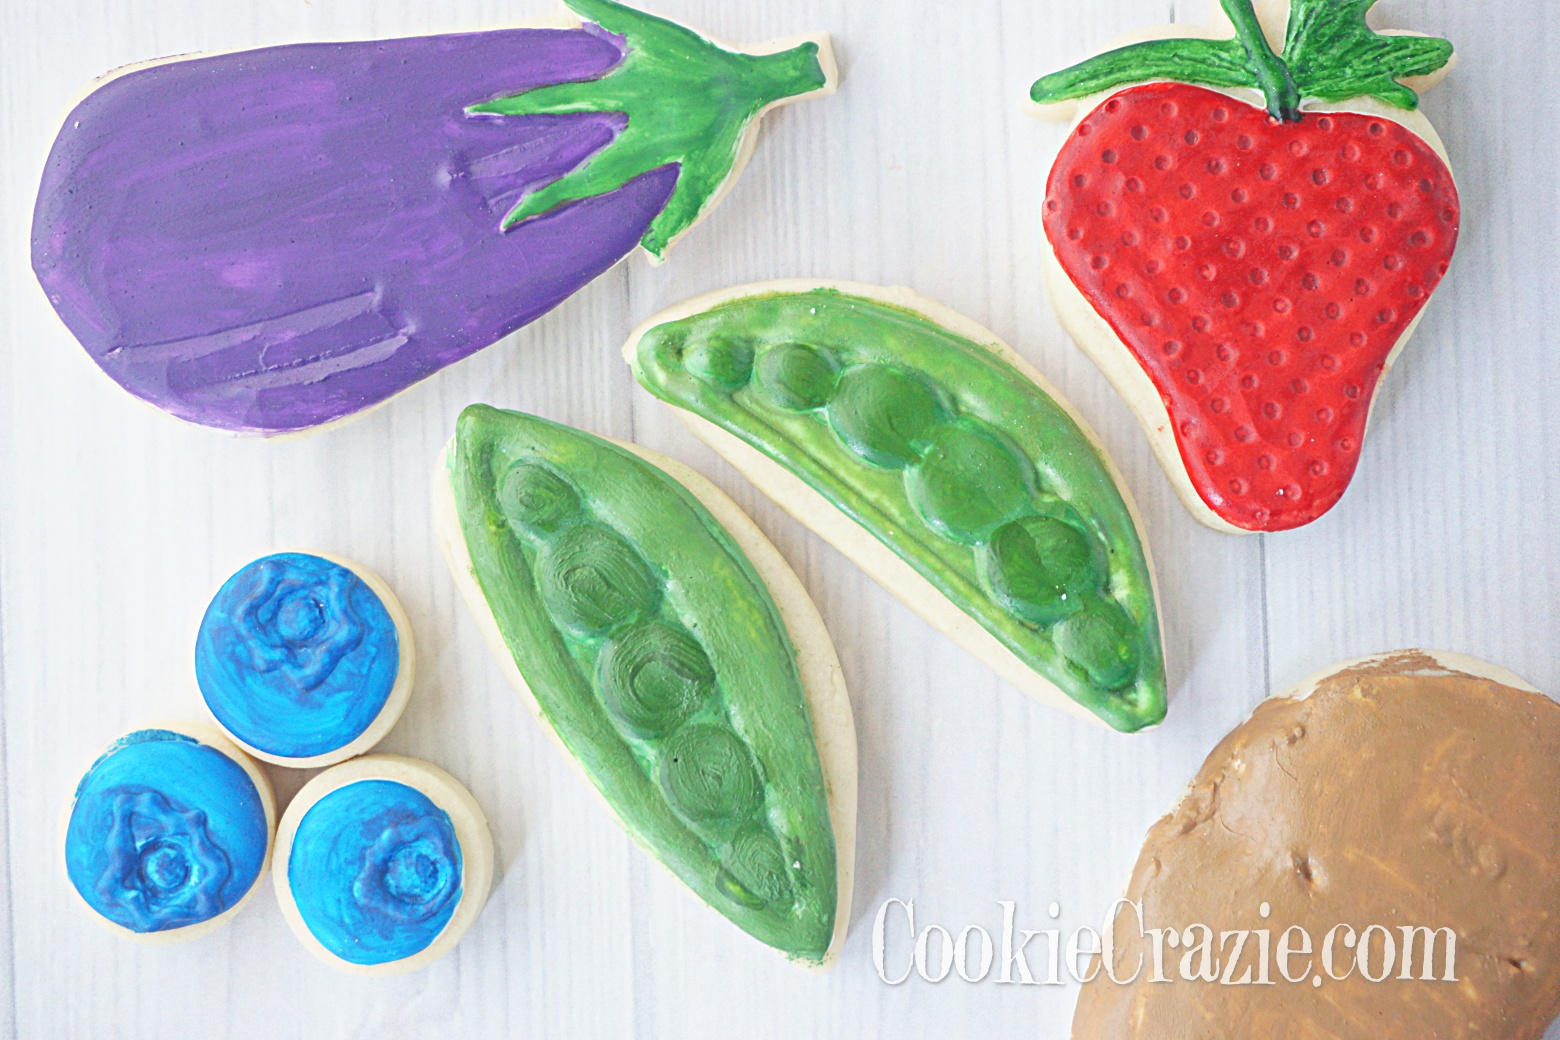 Peas Decorated Sugar Cookie YouTube video  HERE